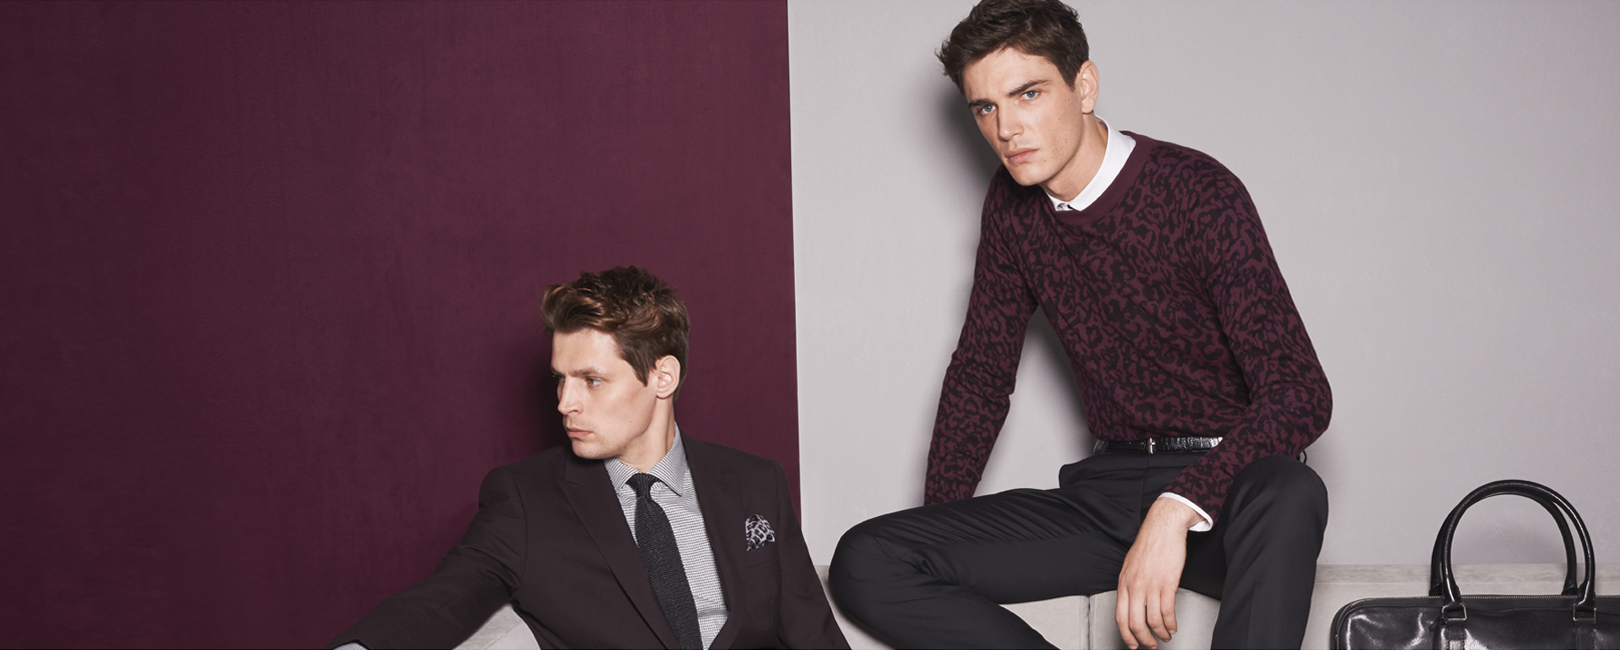 REISS Womenswear, Menswear & Accessories - Iconic Fashion Clothing